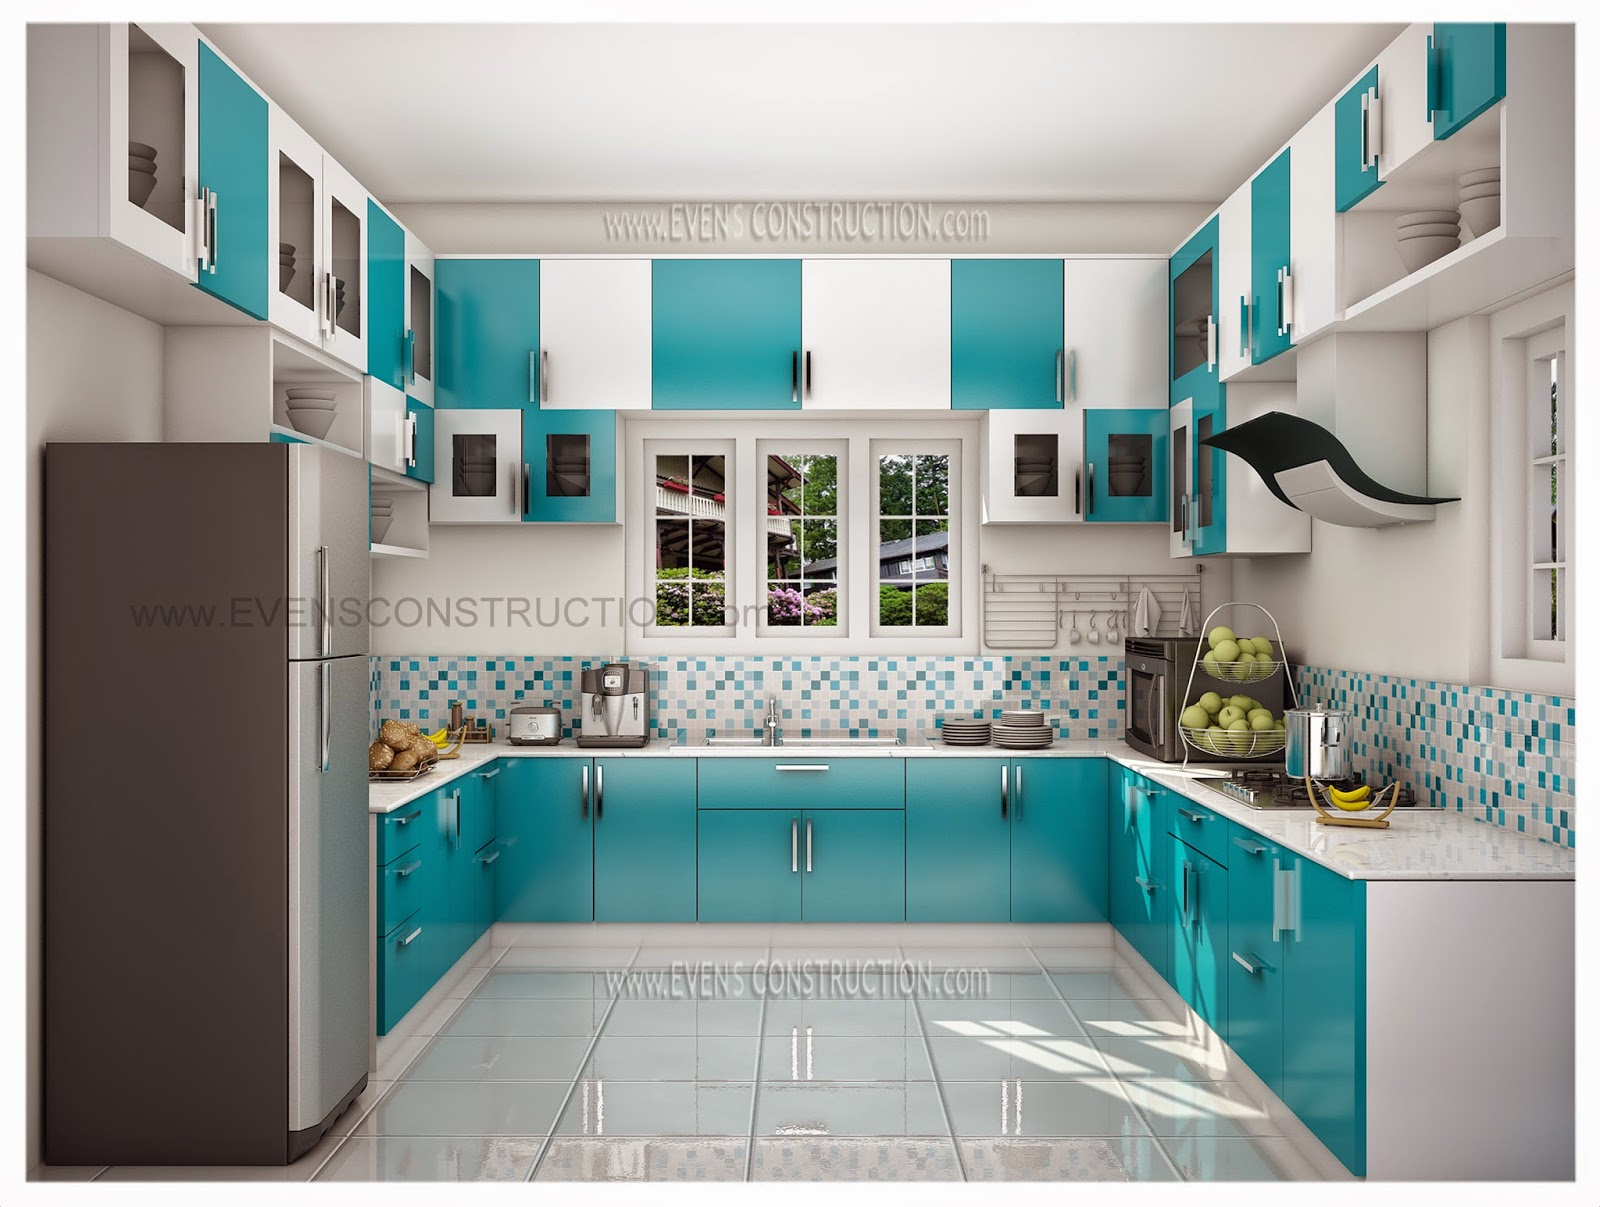 Evens construction pvt ltd beautiful kerala kitchen for Interior design photos